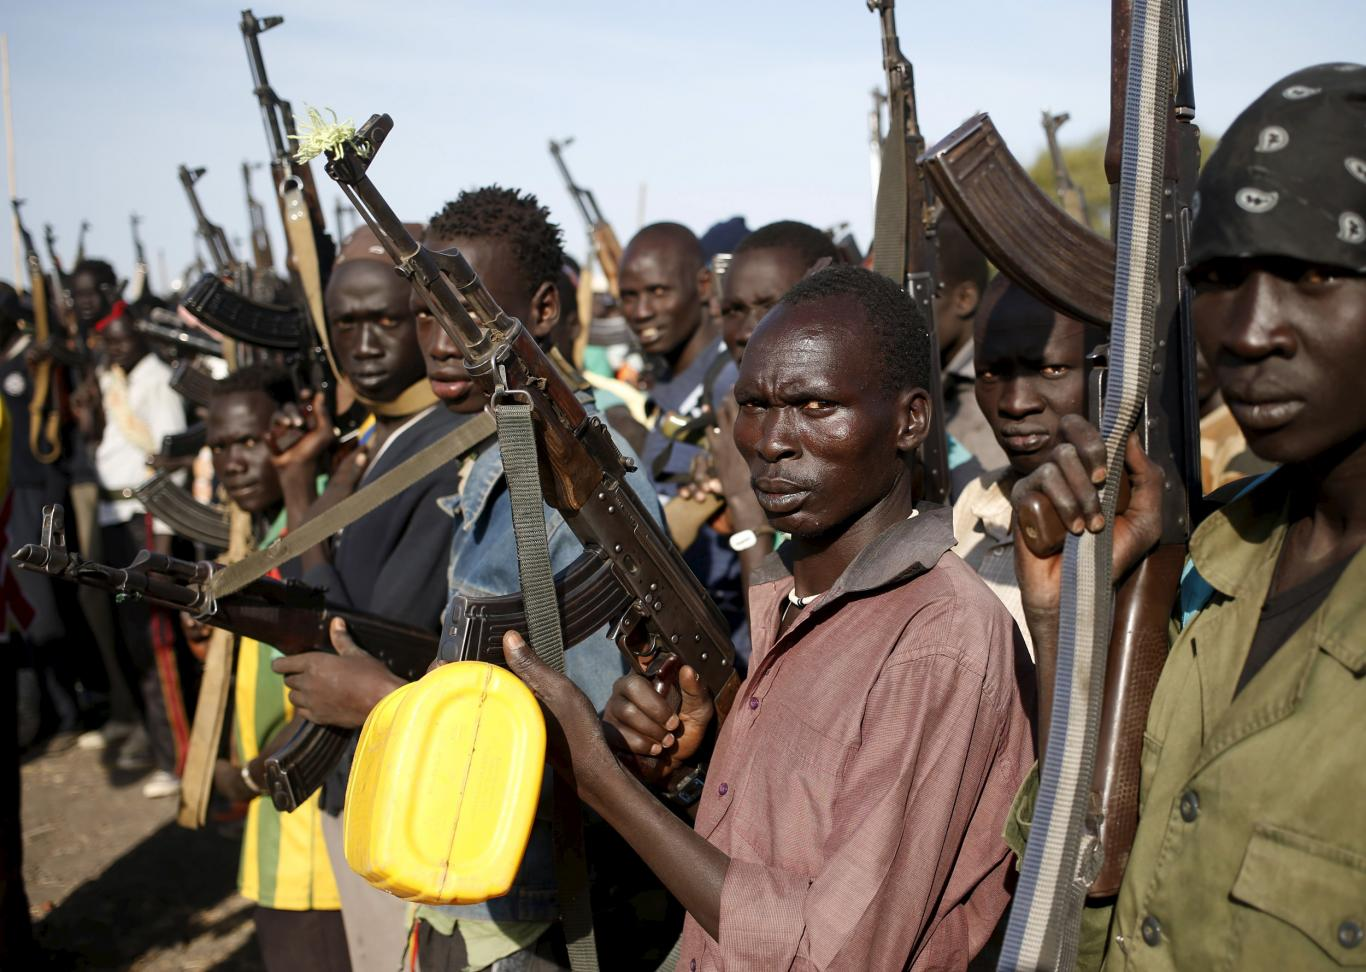 south-sudan-tribal-clash-leaves-25-dead-people-officials.jpg